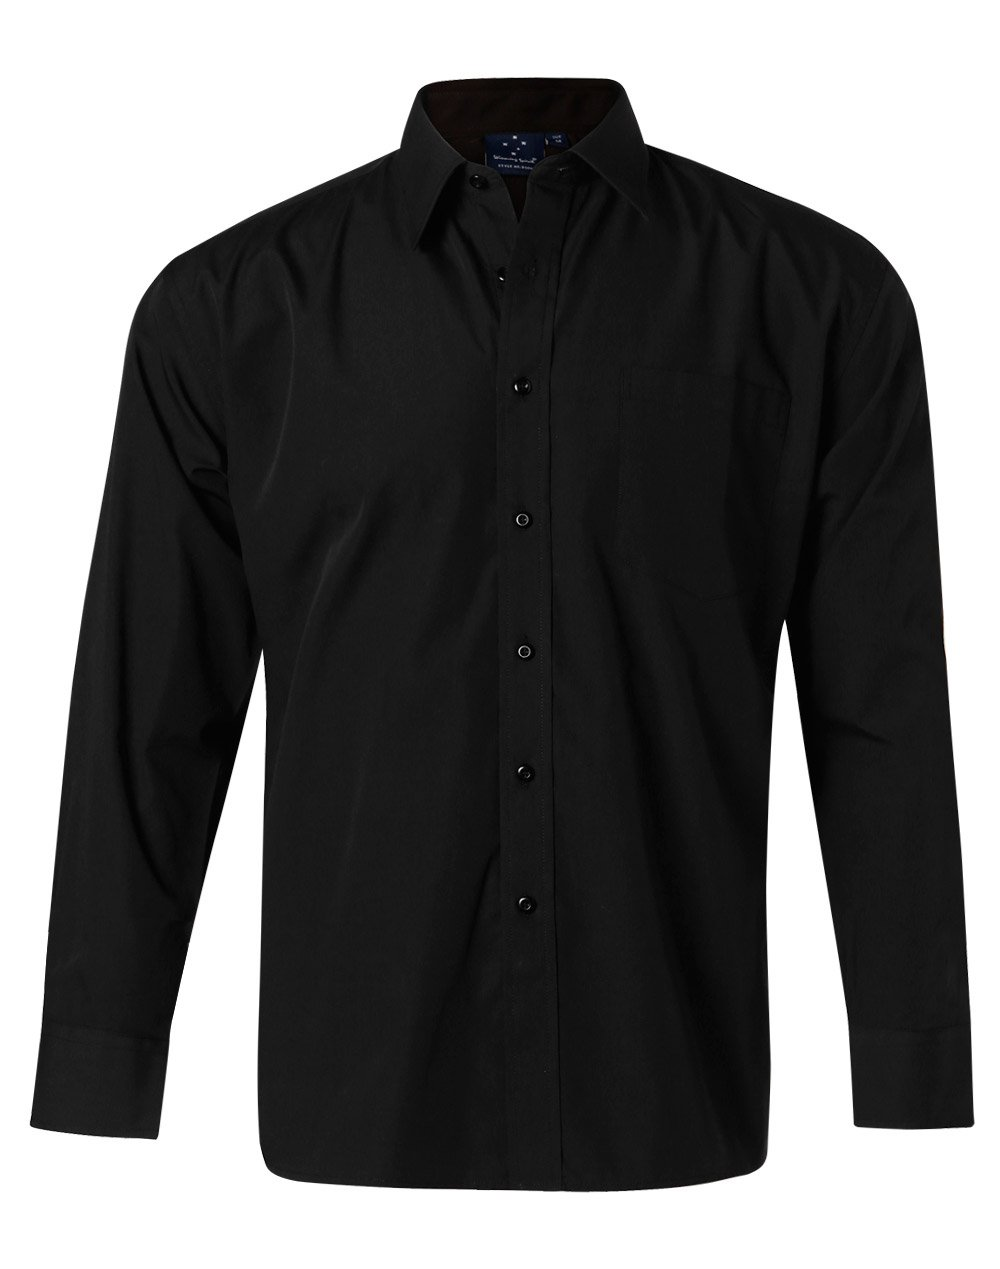 Men's Poplin Long Sleeve Business Shirt